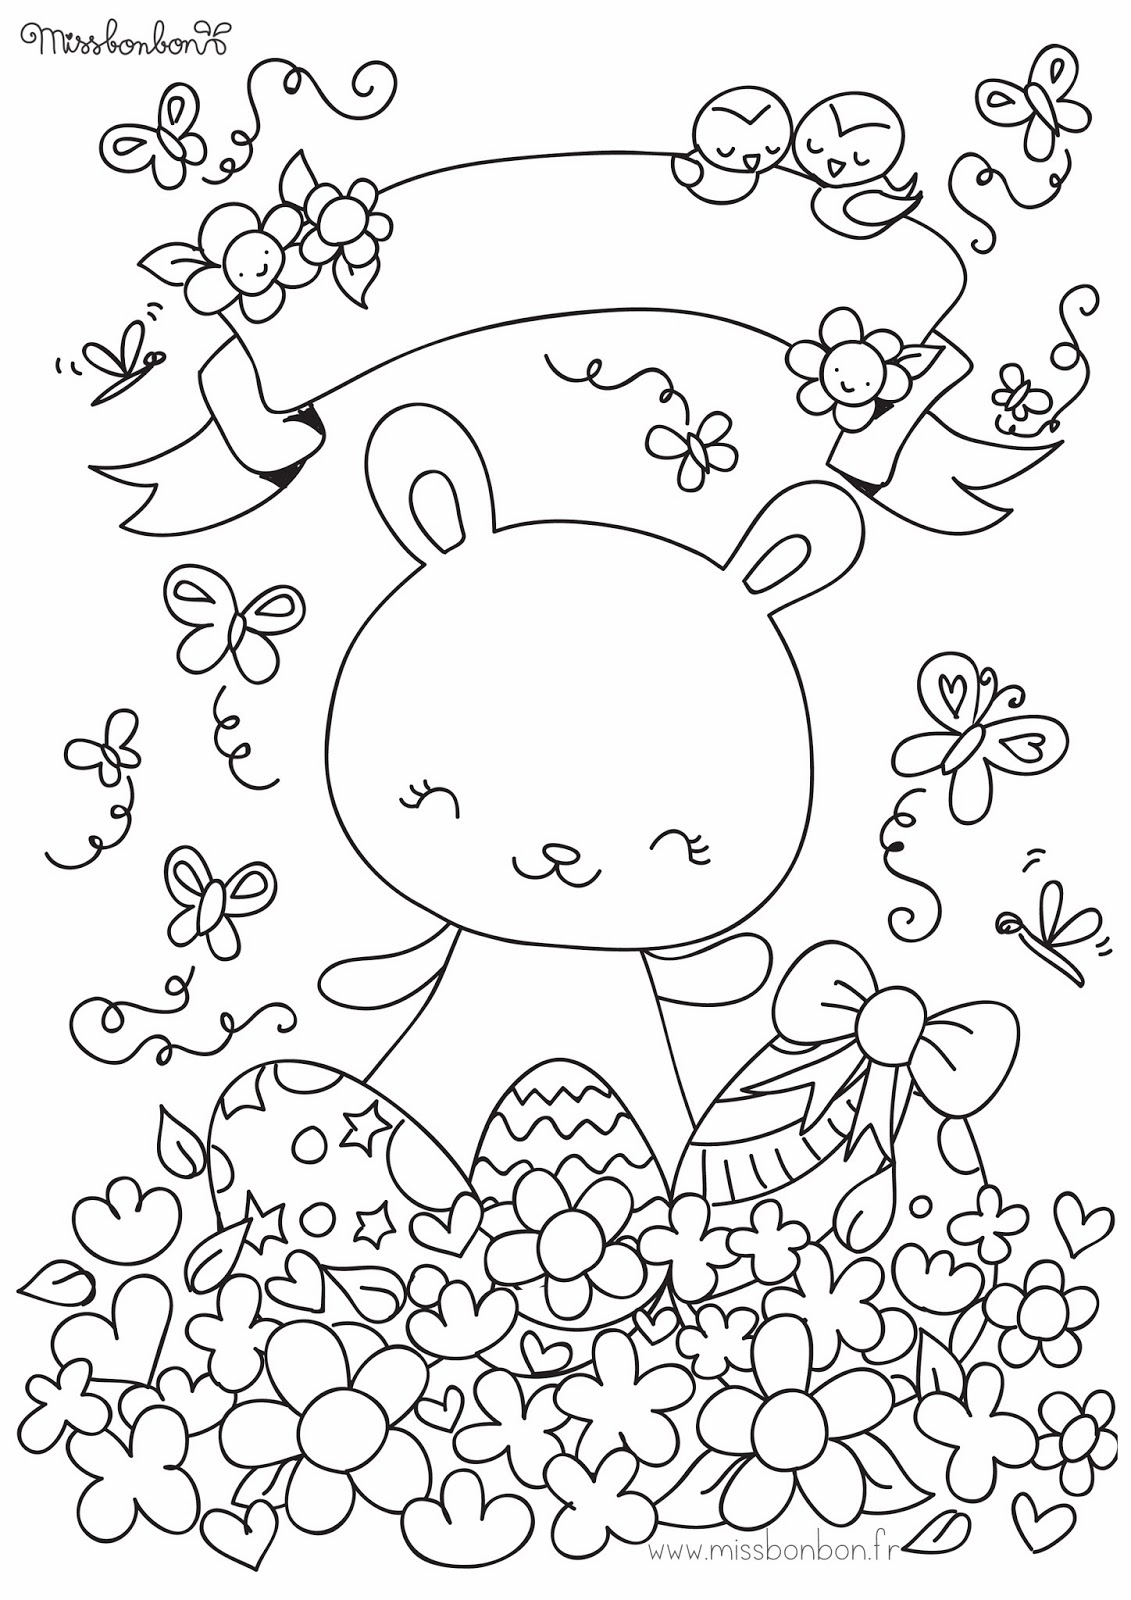 Abracadabulle - Coloriages paques ...